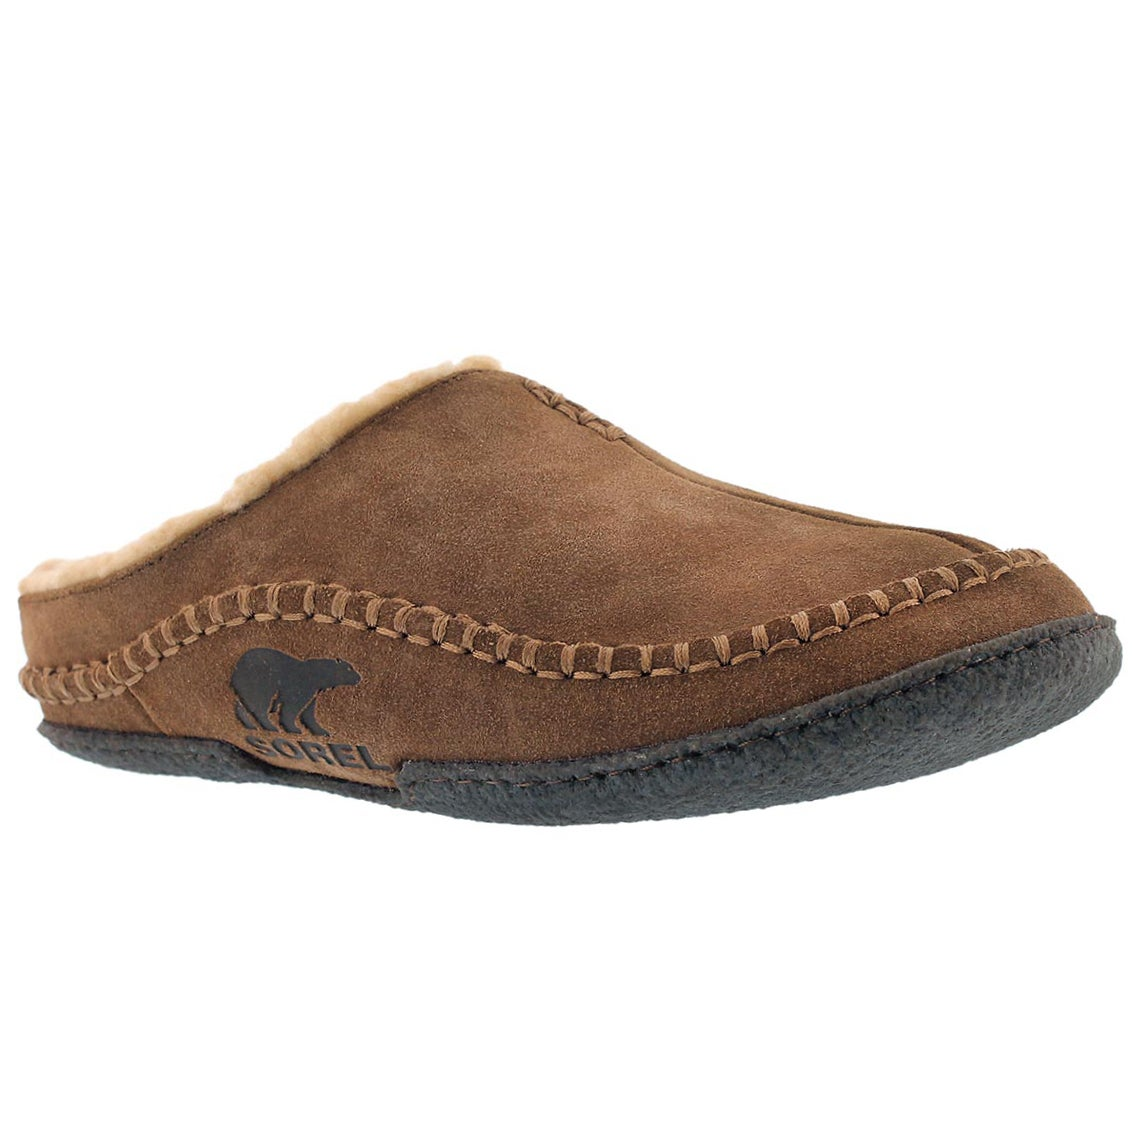 Men's FALCON RIDGE marsh suede open back slippers